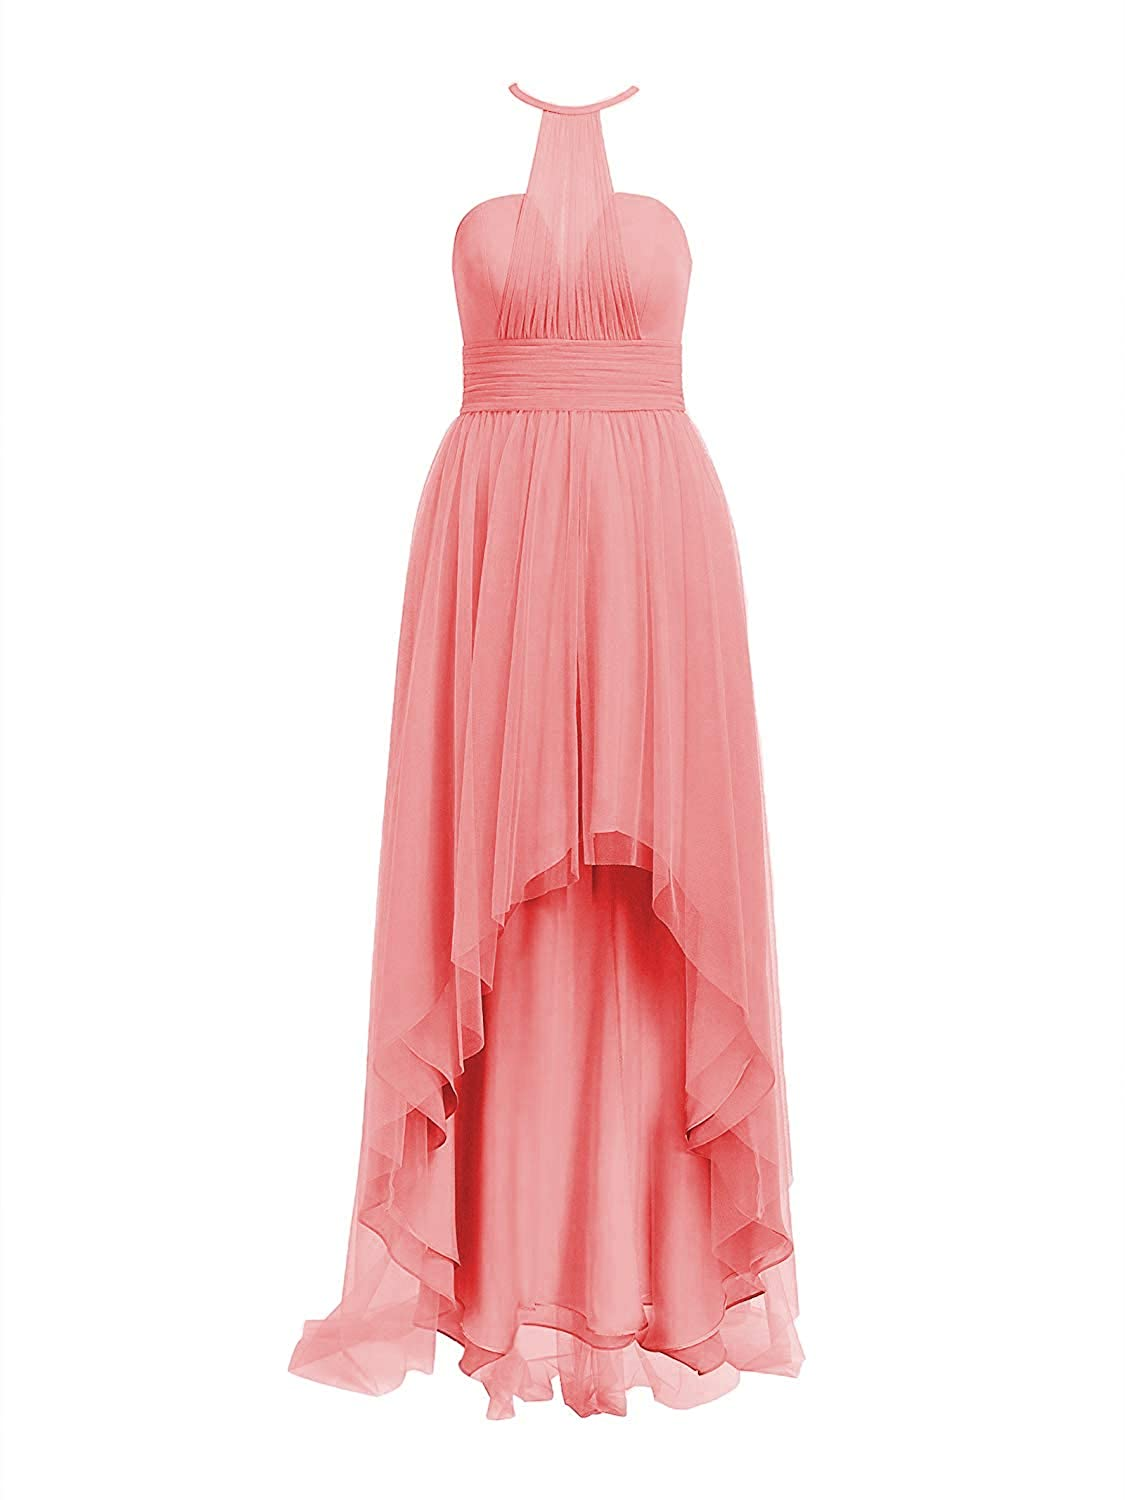 Coral Tulle Bridesmaid Dresses High Low Halter Prom Party Gowns Backless Evening Formal Dress